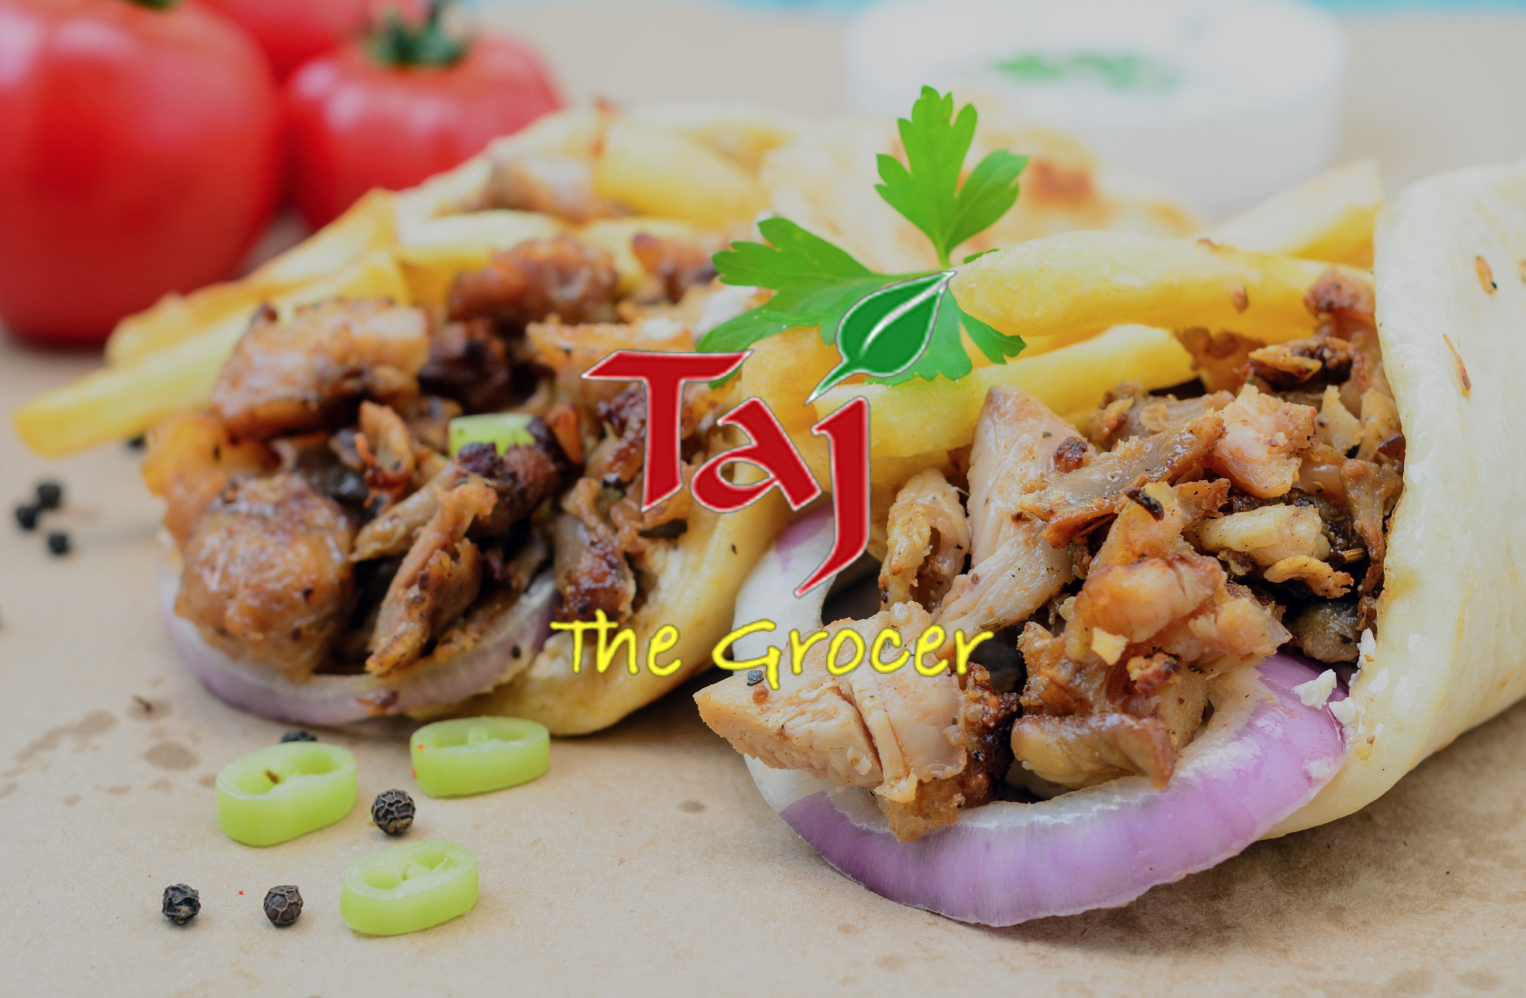 10% OFF DELI COUNTER - AT TAJ GROCERS (IN STORE)